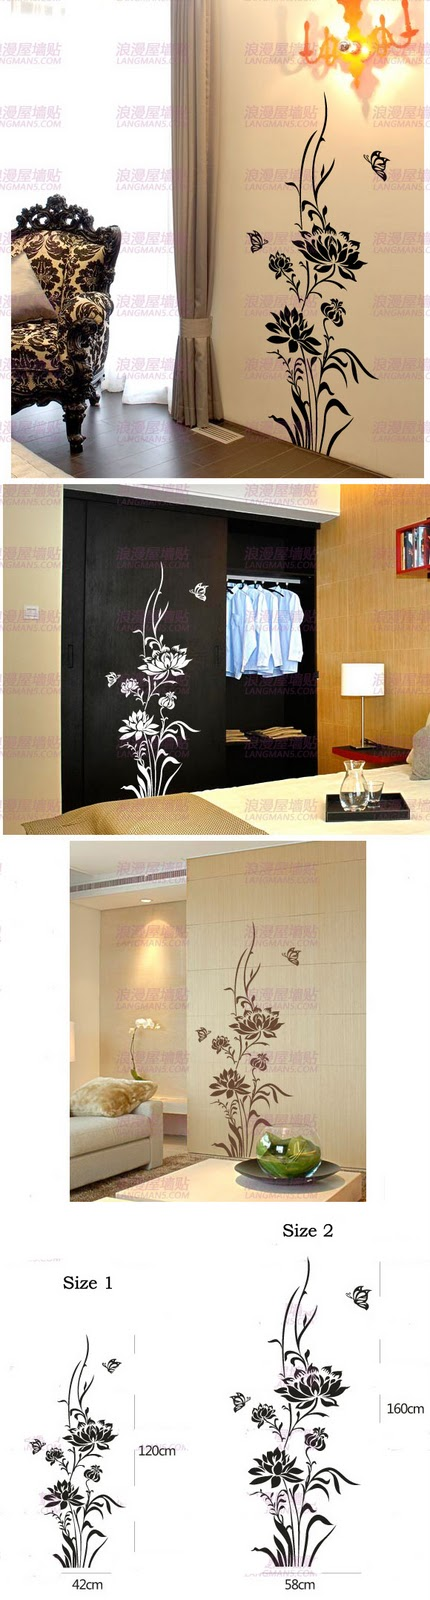 Me Amp Decor Ideas For Empty Wall Space